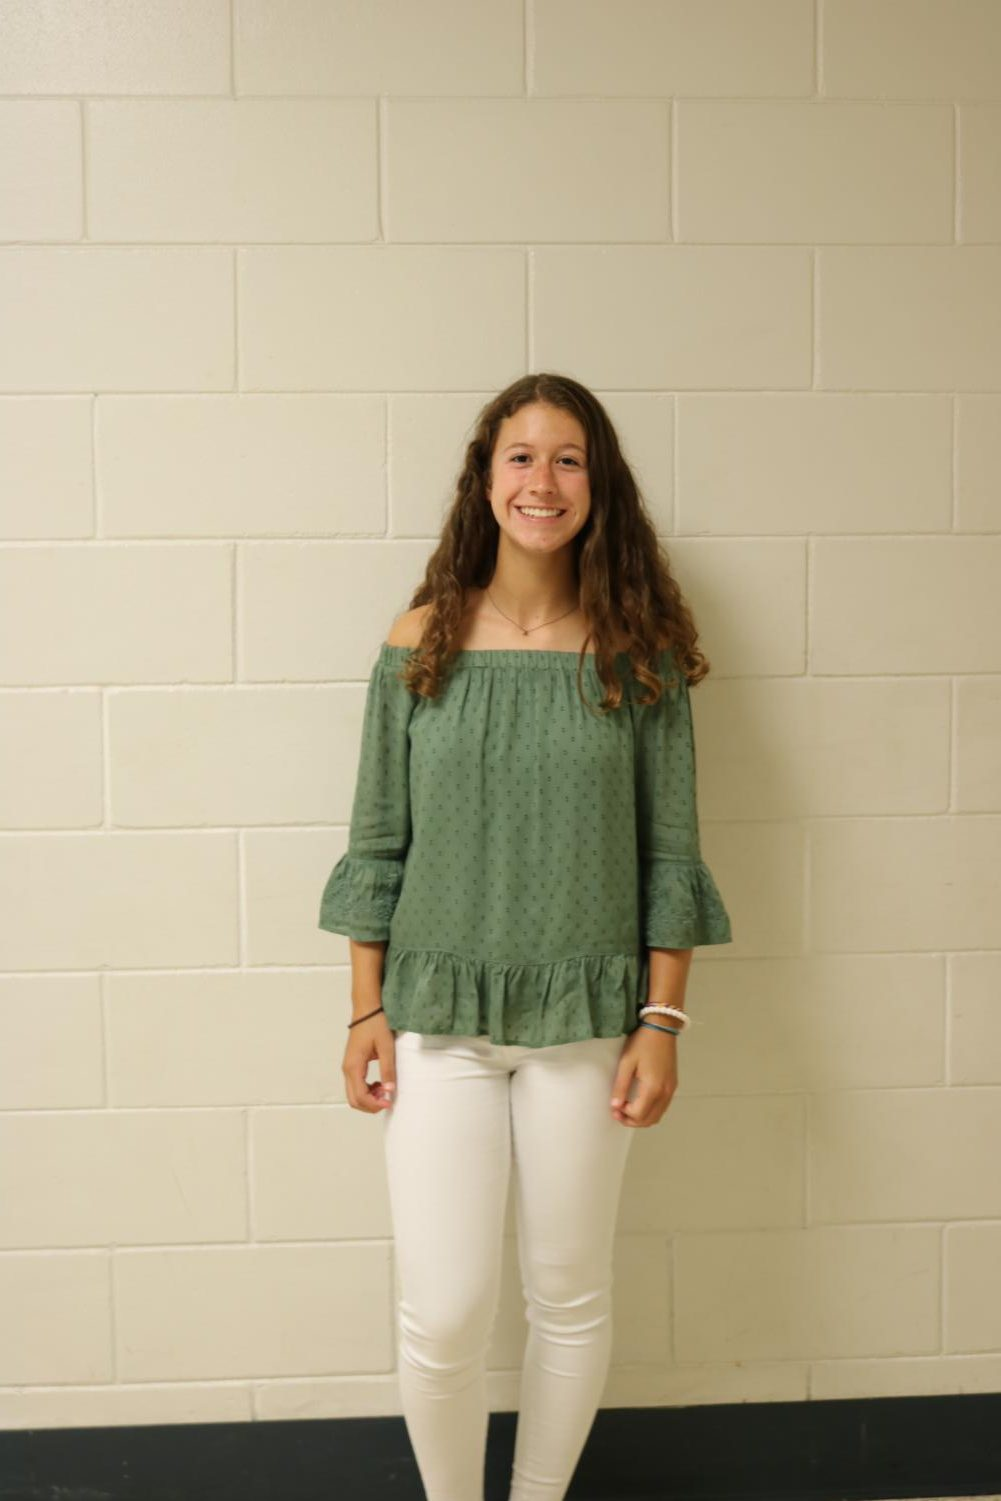 Alex+Kirkner+%28%2720%29+dressed+sophisticated+and+comfortable%2C+with+white+jeans+and+a+flowy+top.